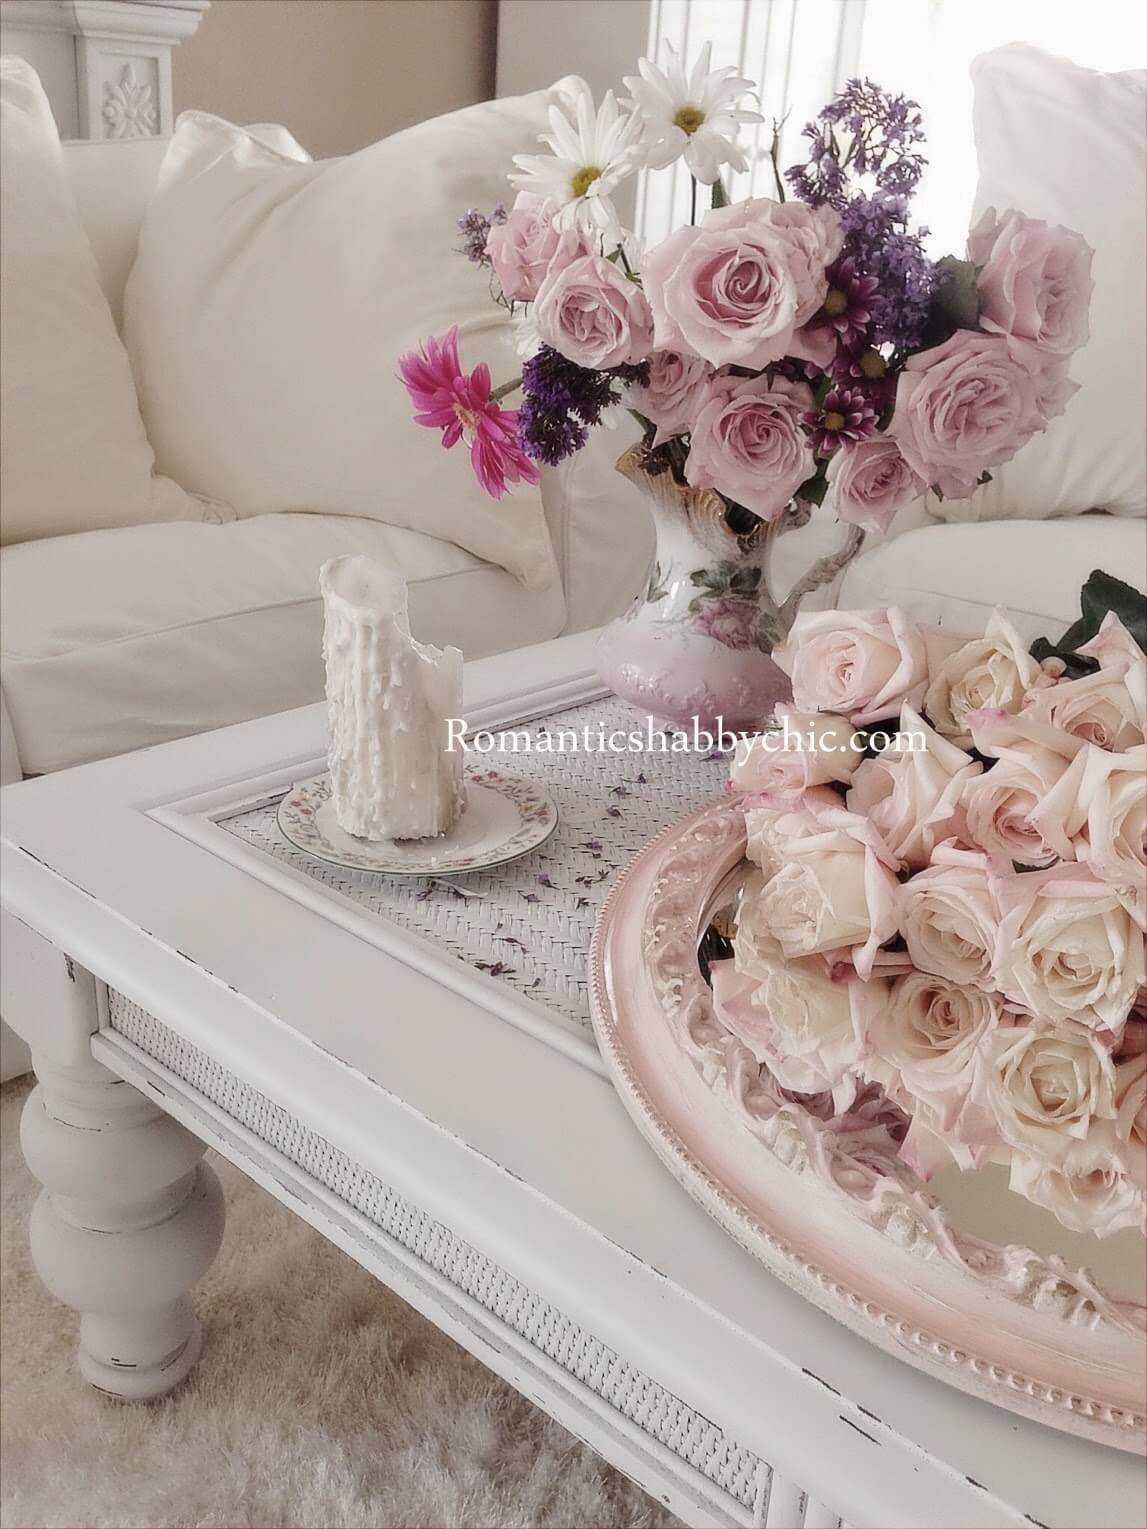 Lace-topped Table Featuring Shabby-chic Country Bouquets